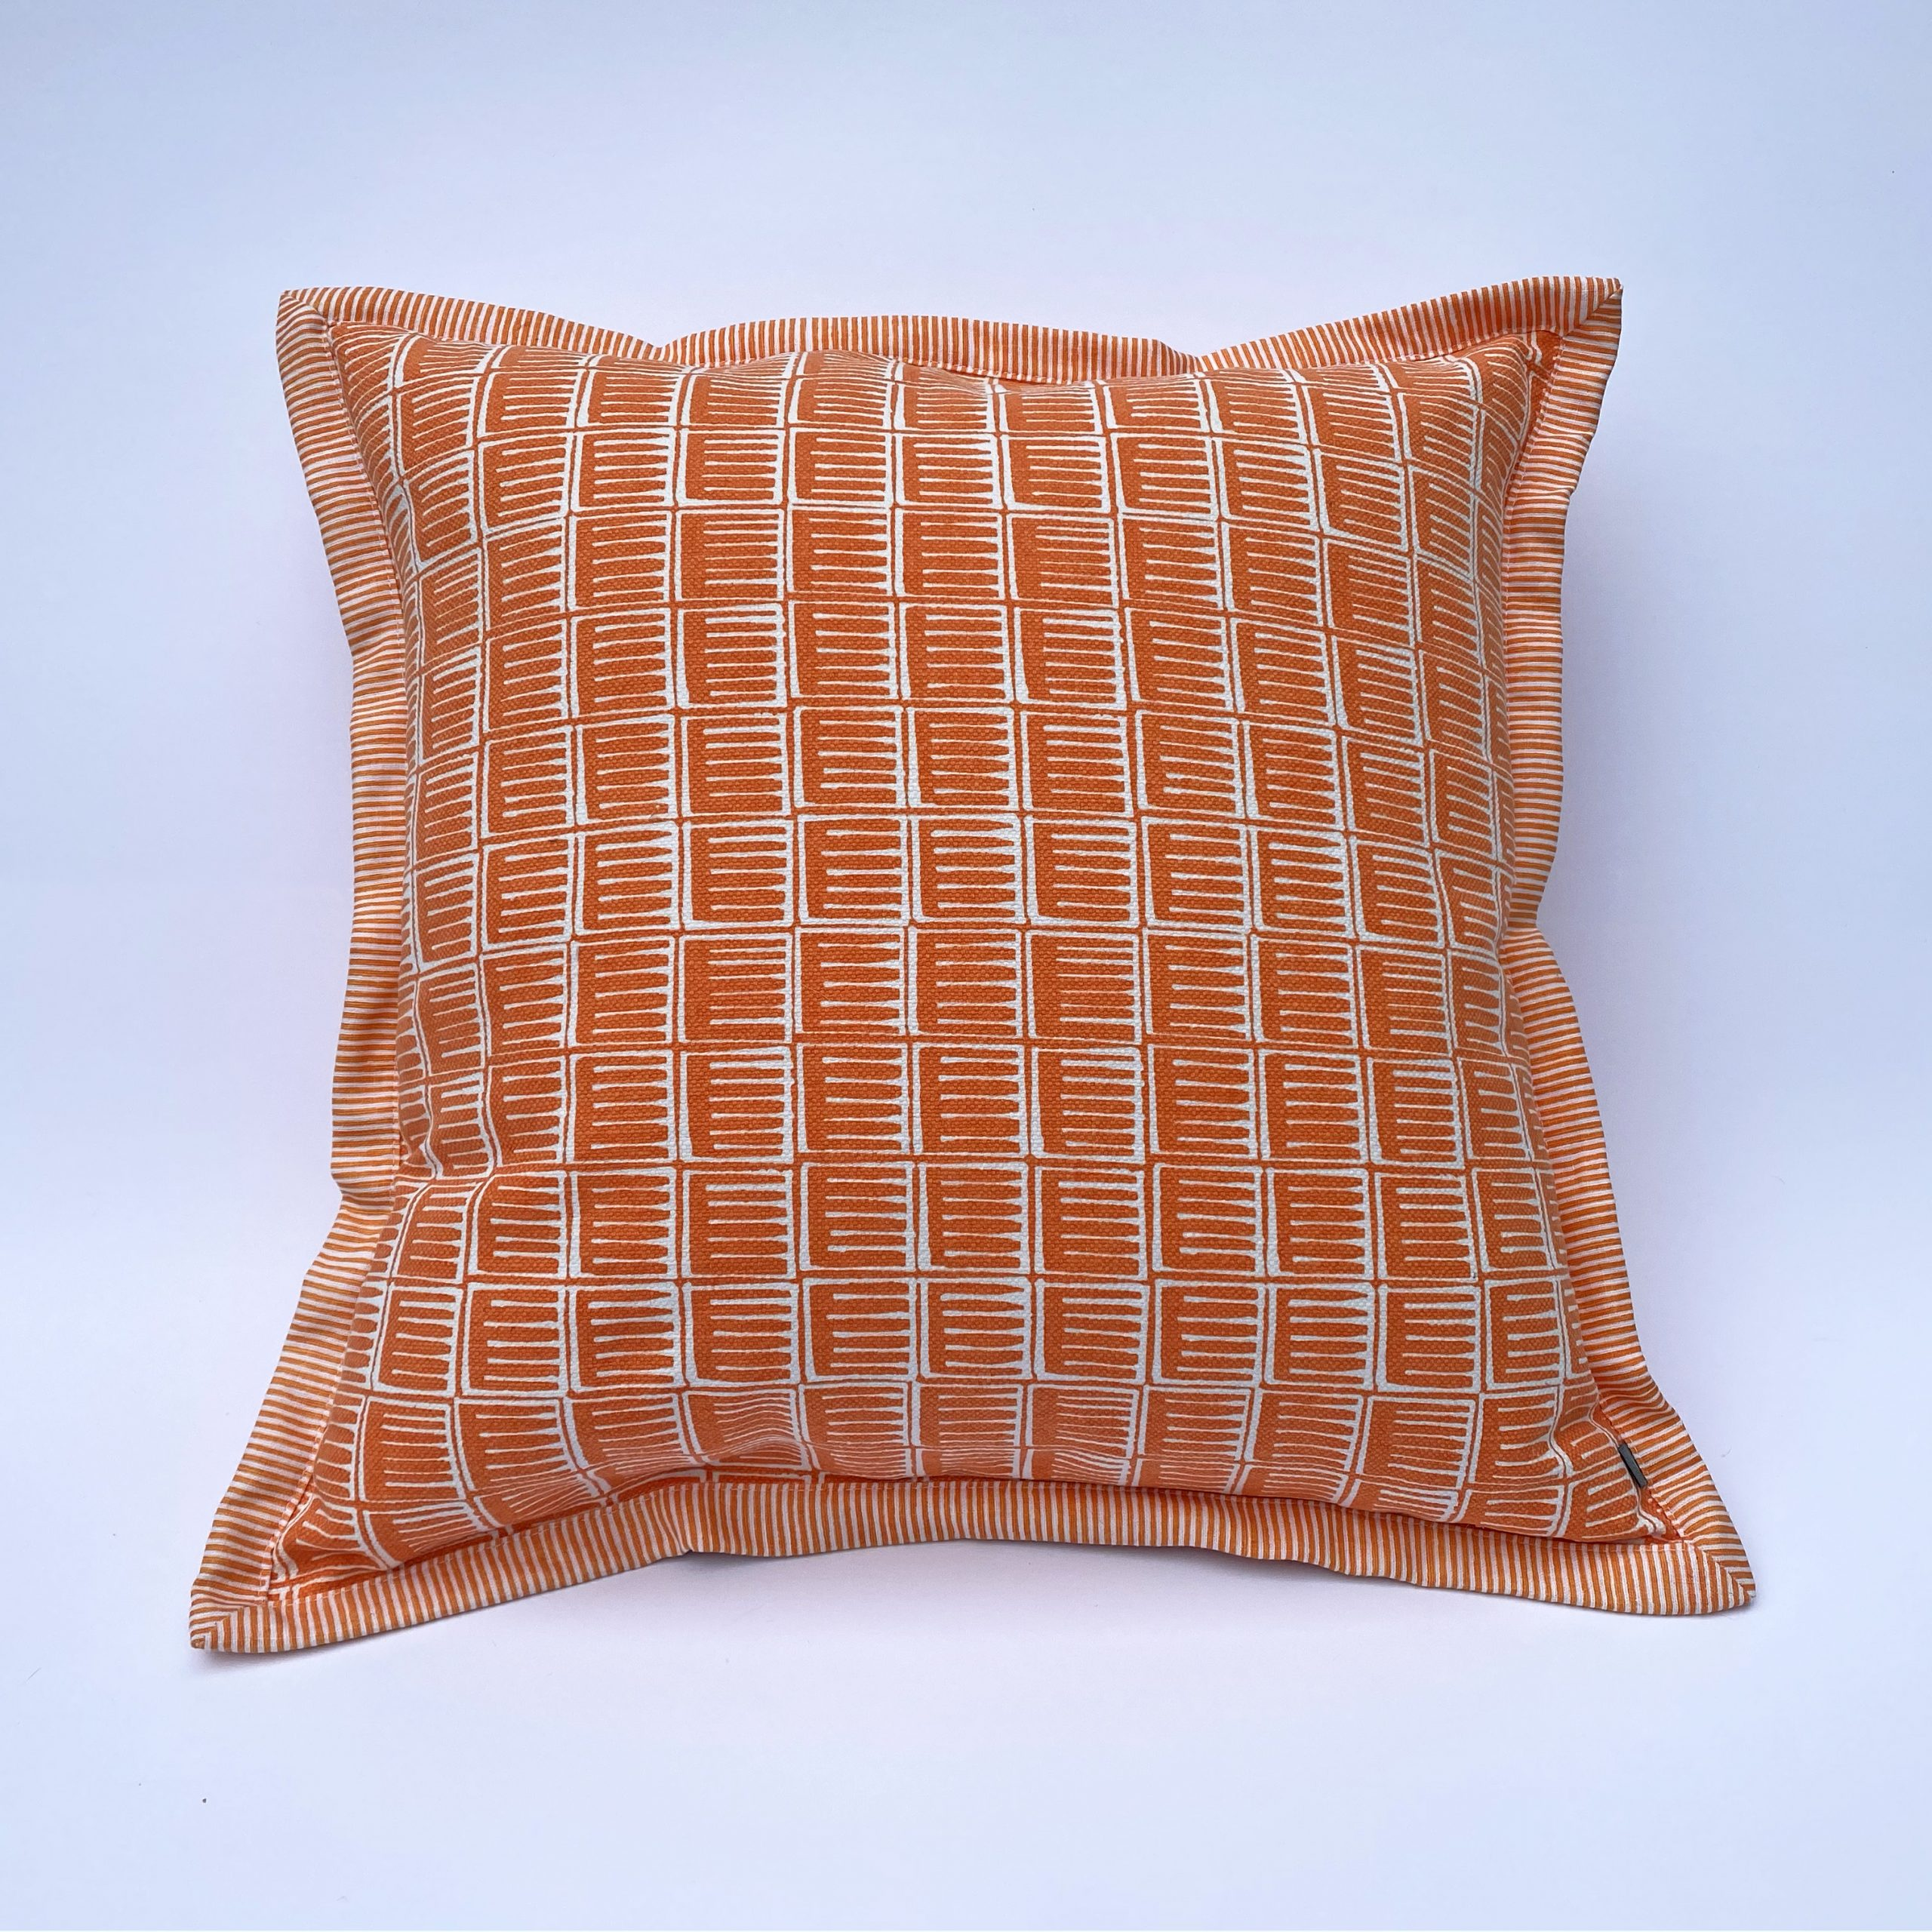 Inky Cushion in Orange